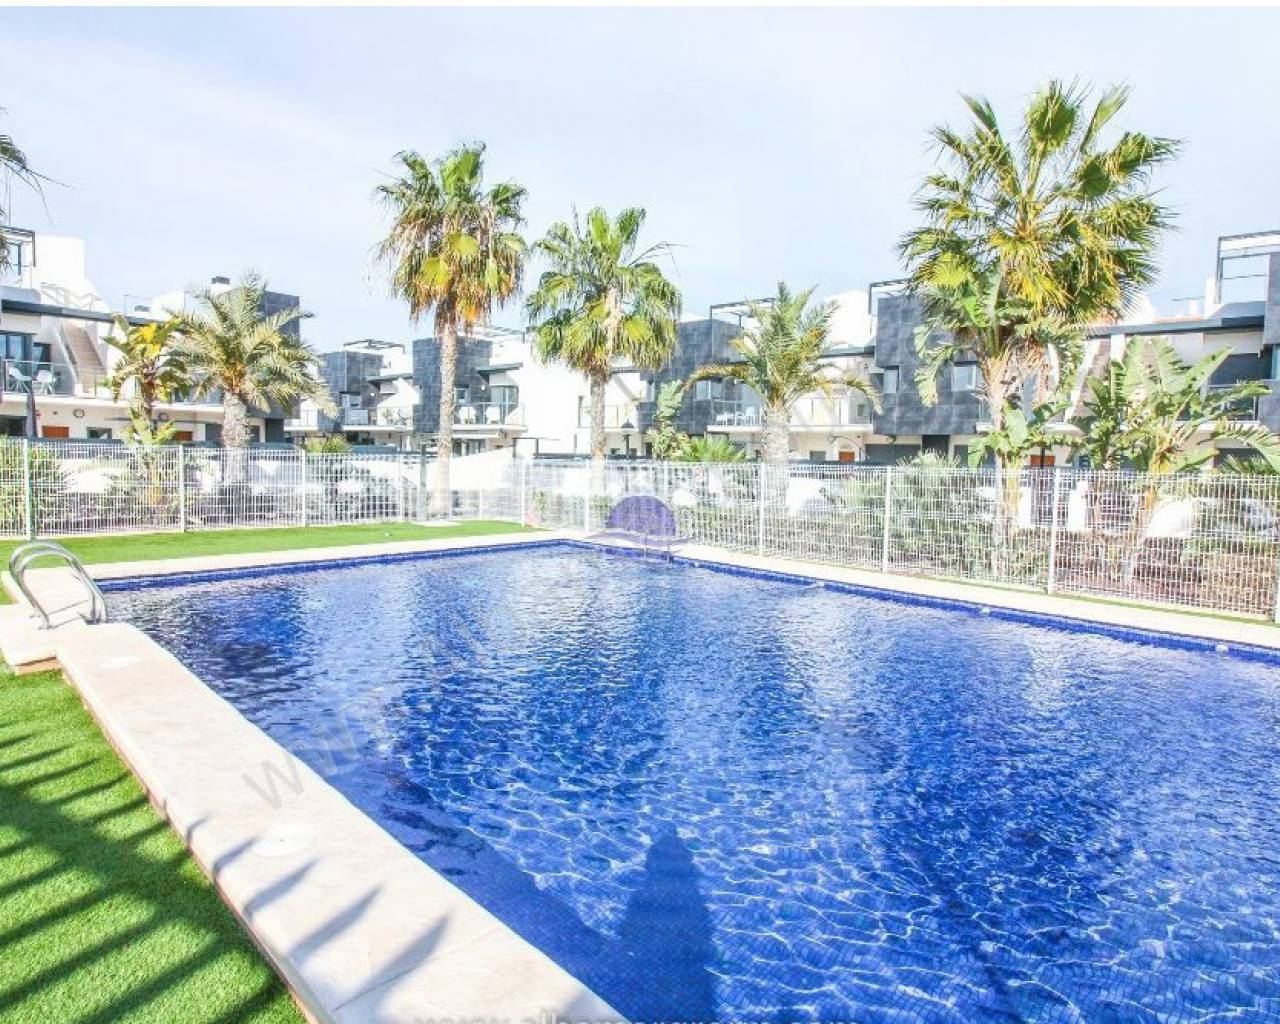 Apartment - Short term rental - Orihuela Costa - La Zenia